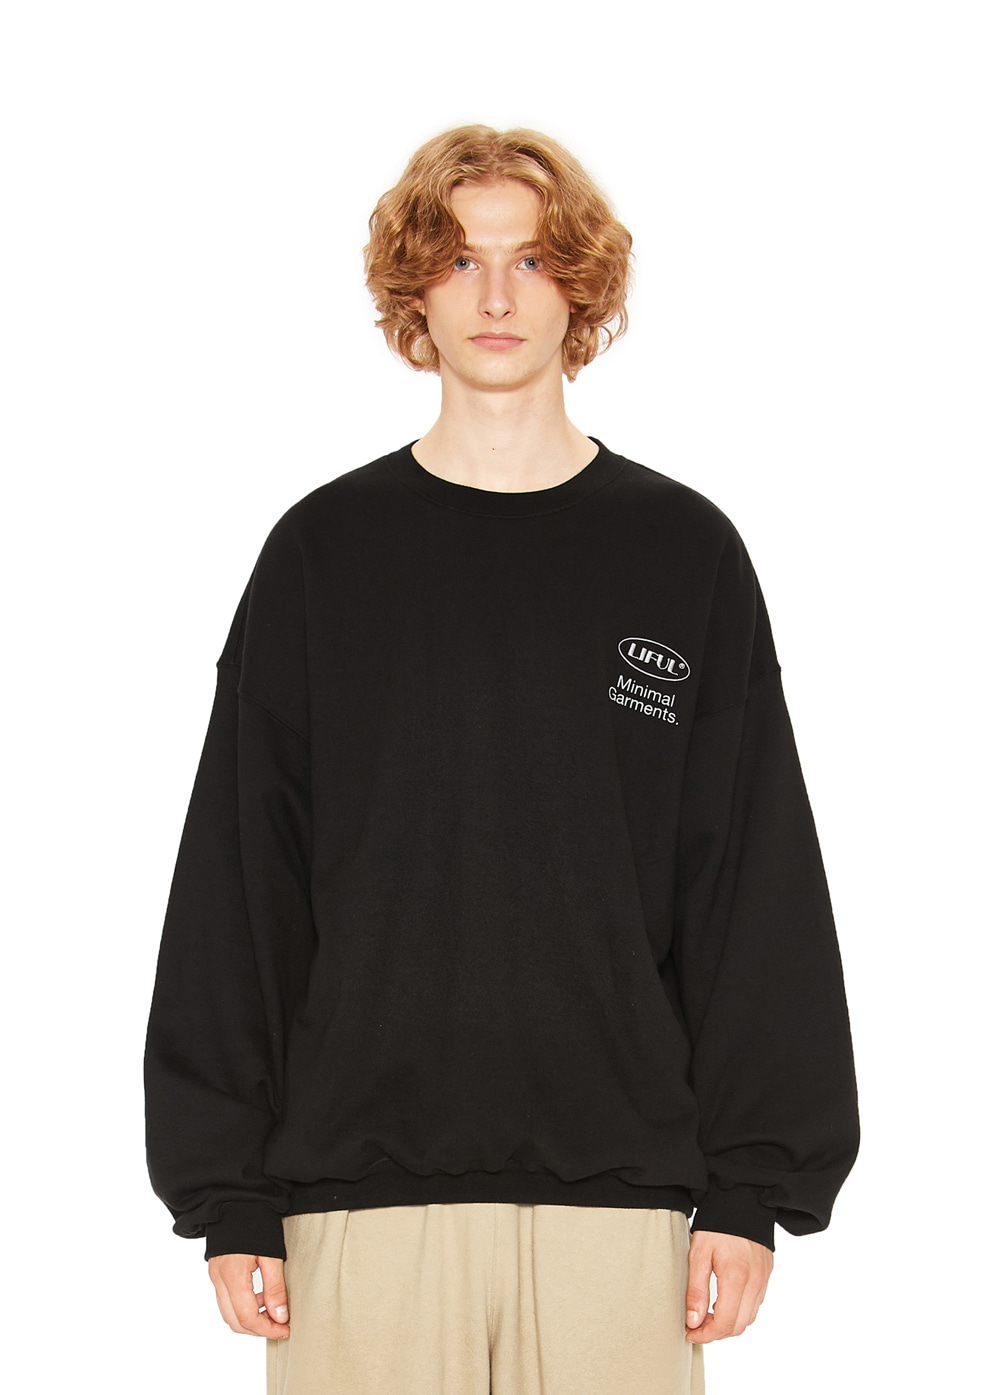 MINI OVAL LOGO SWEATSHIRT black